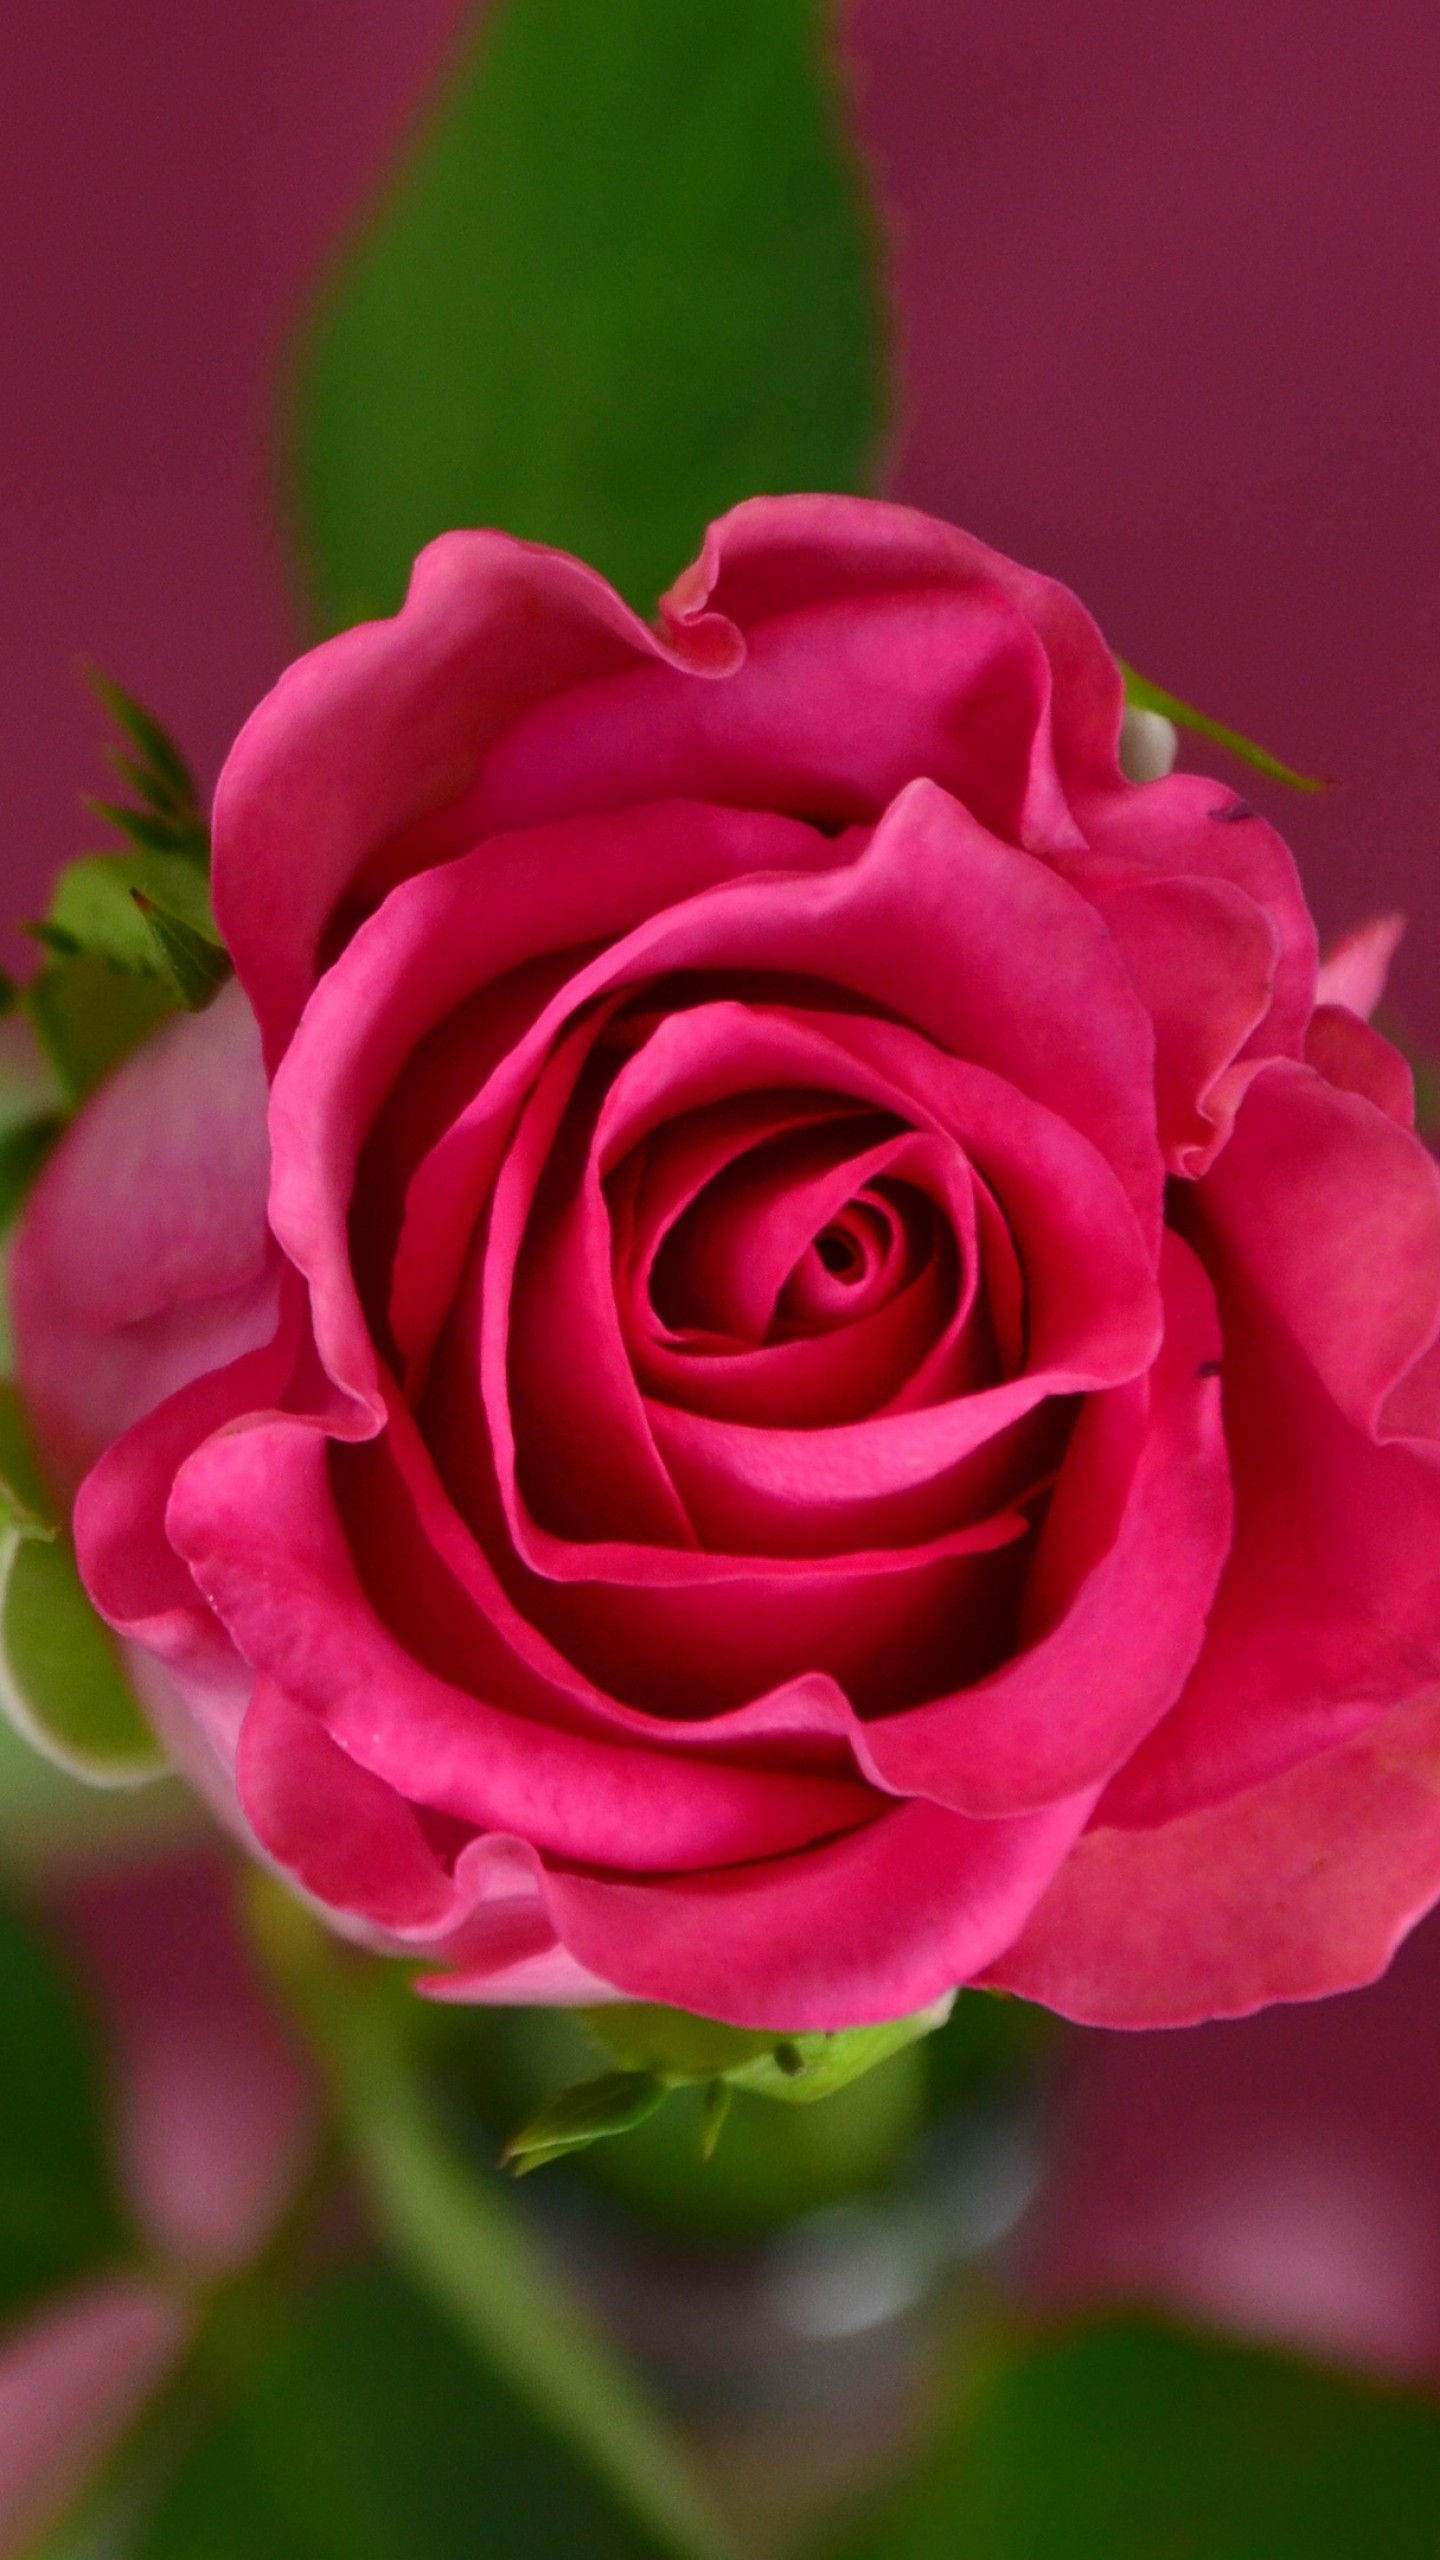 Wallpaper rose 4k hd wallpaper pink spring flower - Rose flowers wallpaper for mobile ...